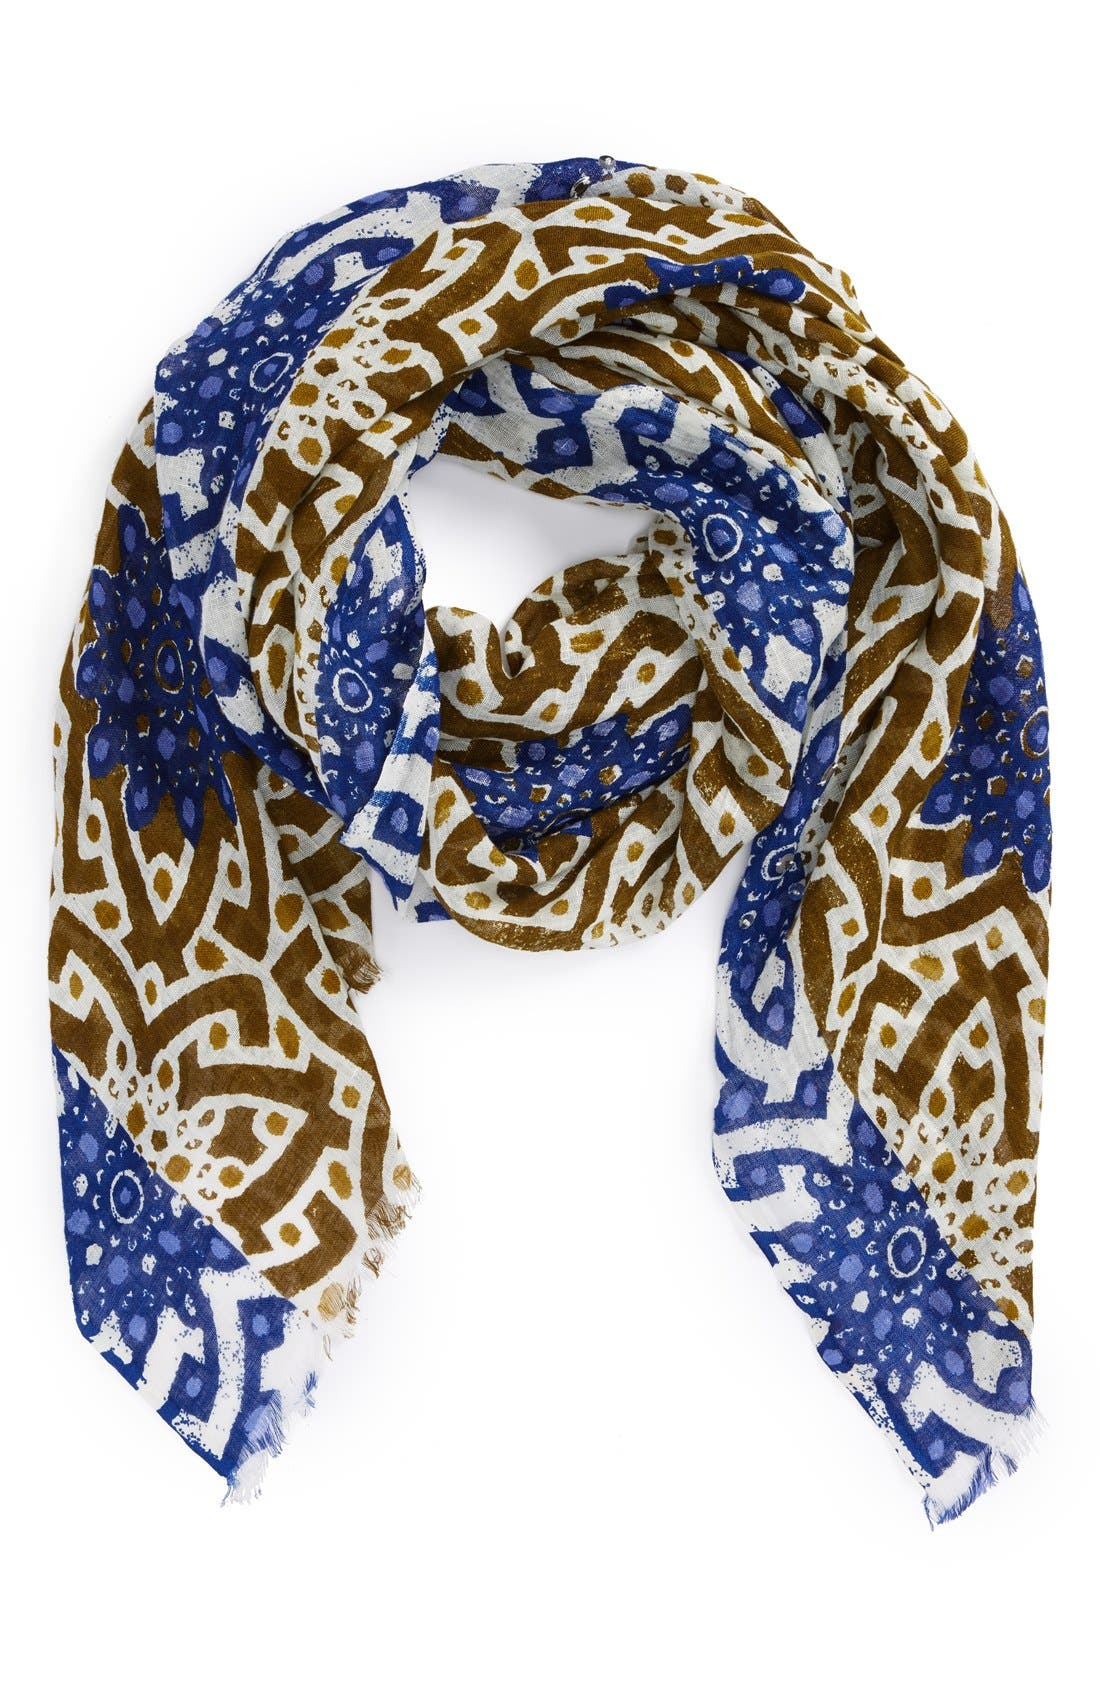 Alternate Image 1 Selected - Tory Burch 'Orion' Embellished Scarf